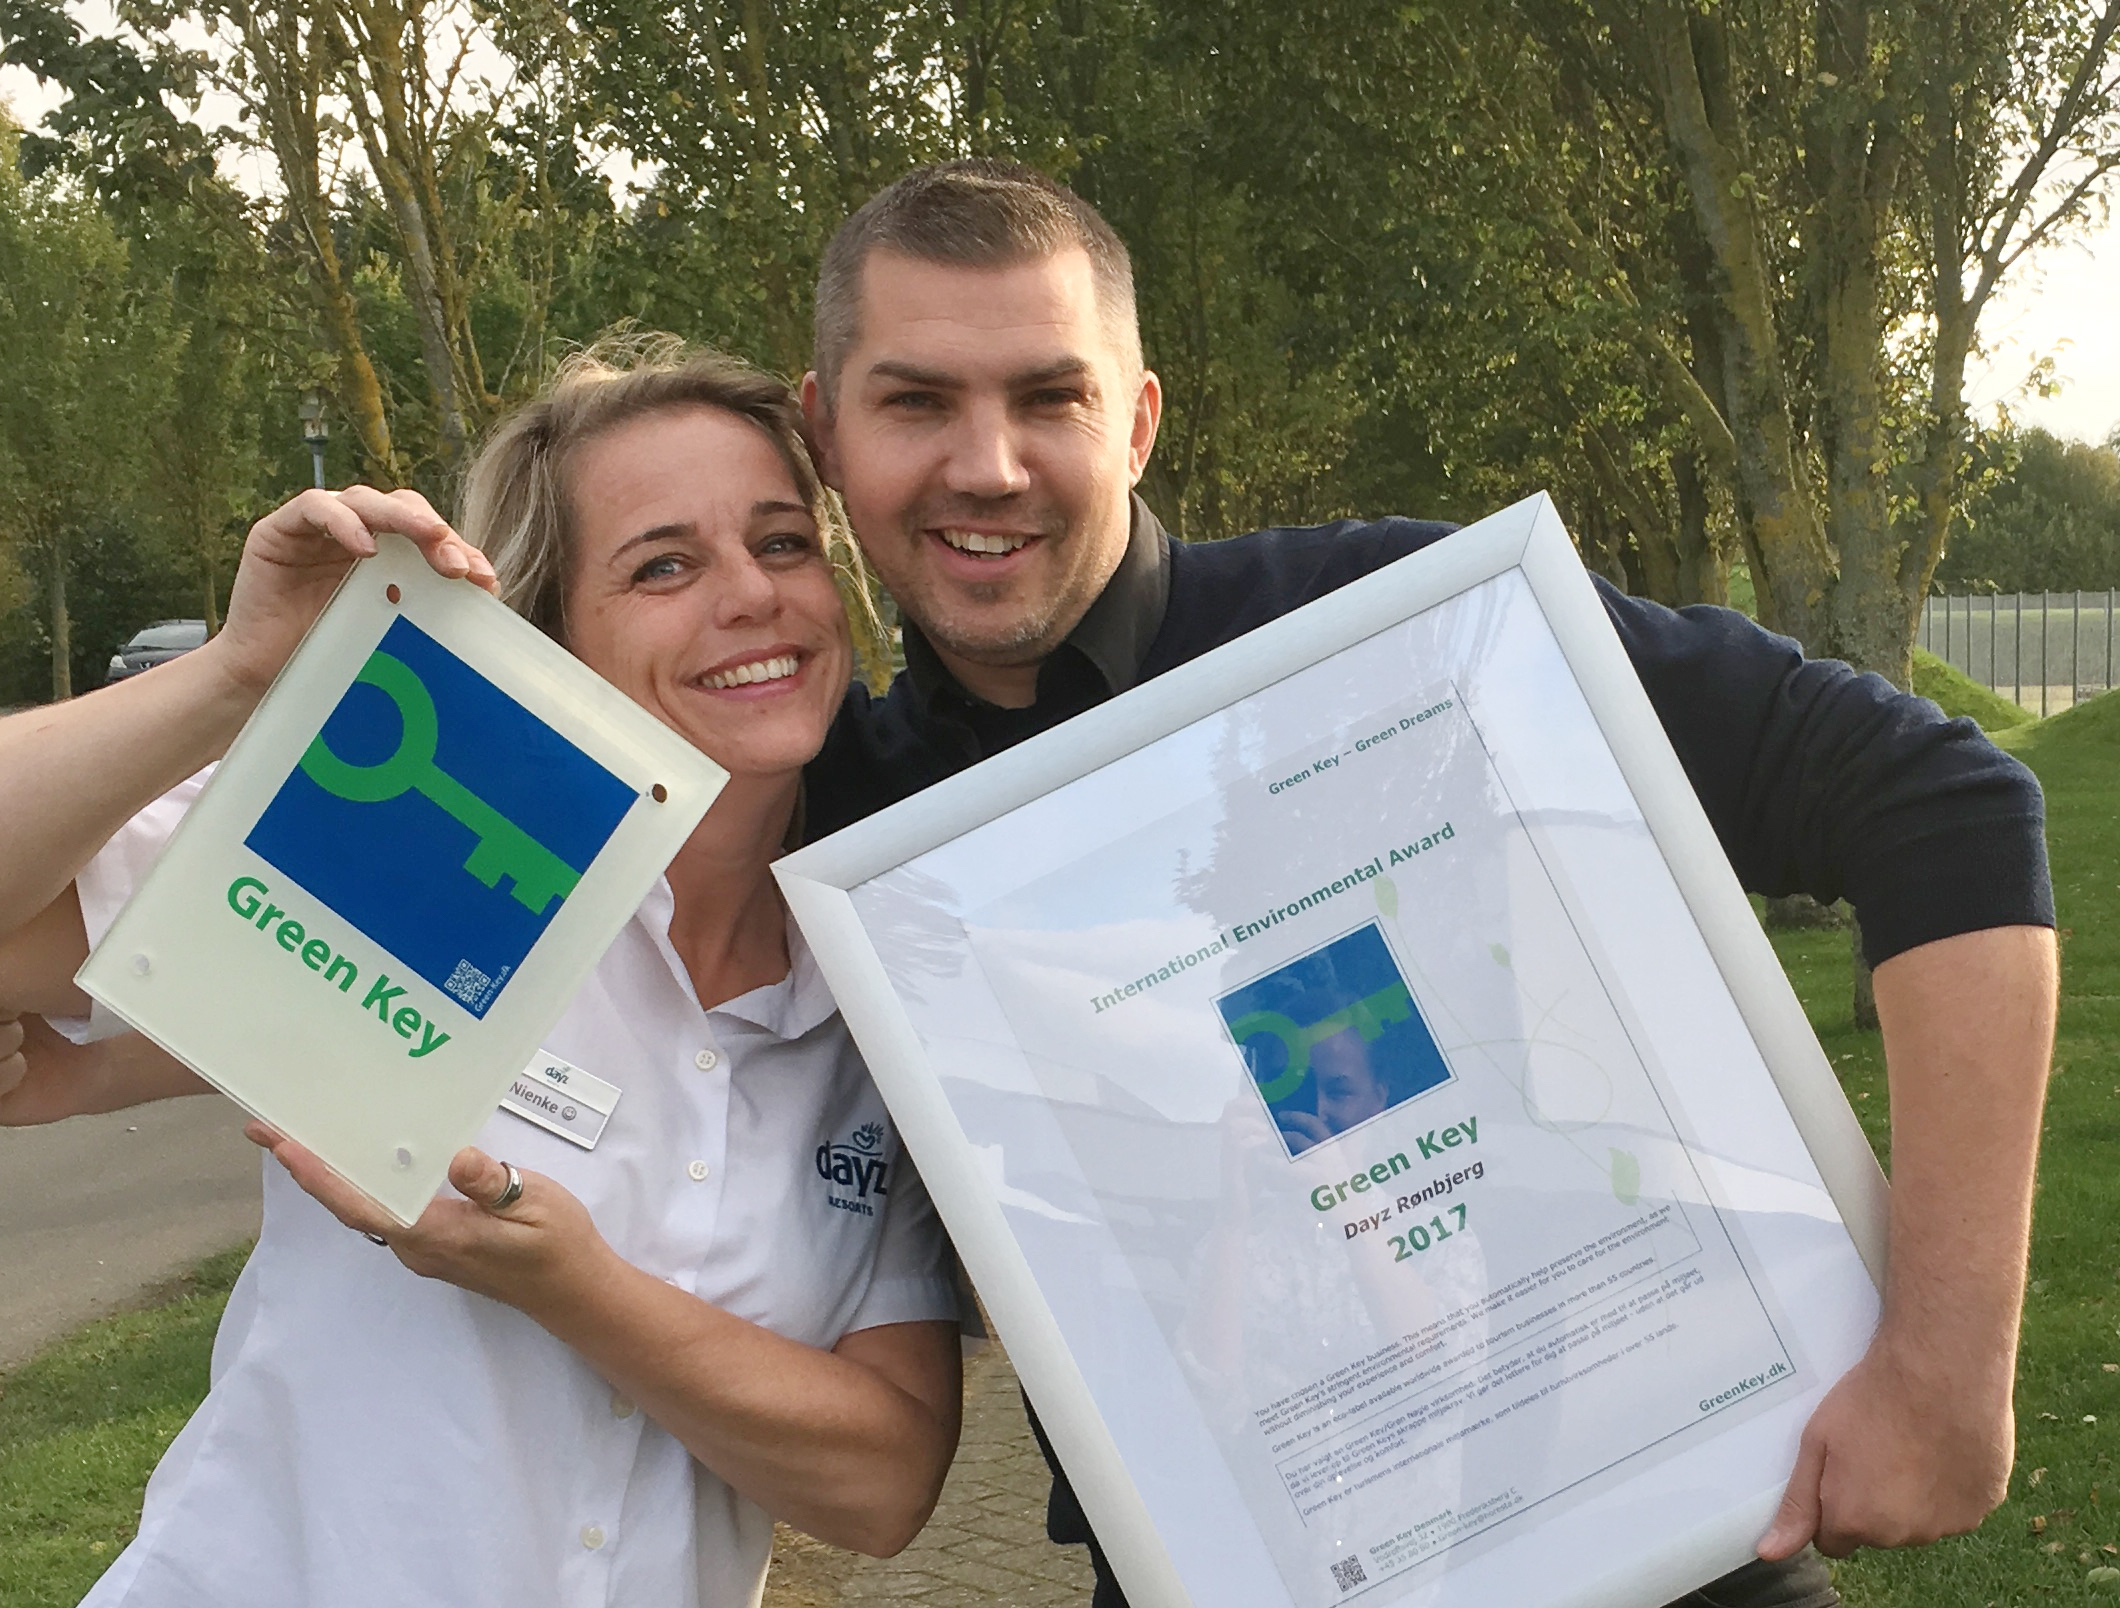 Employees Piertel Maartje Jonker and Casper Lemvig celebrating the Green Key award of Dayz Rønbjerg.